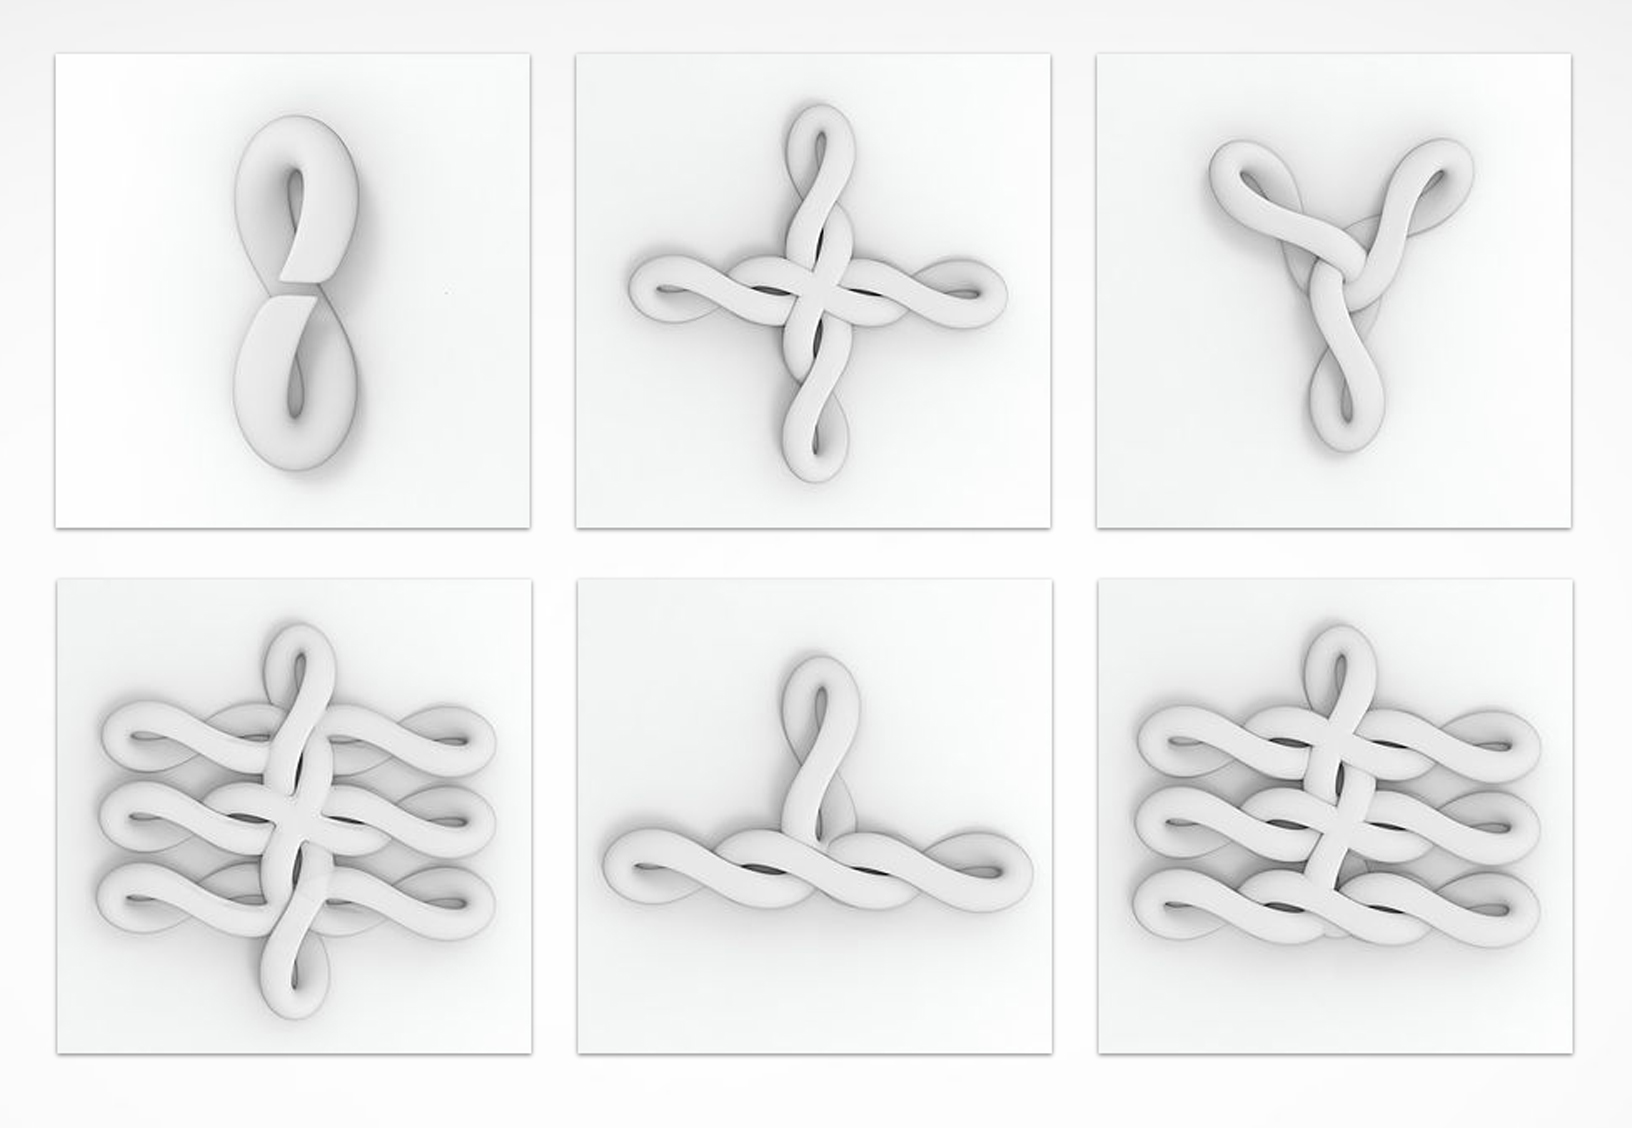 The complete set of Knot Knit pieces